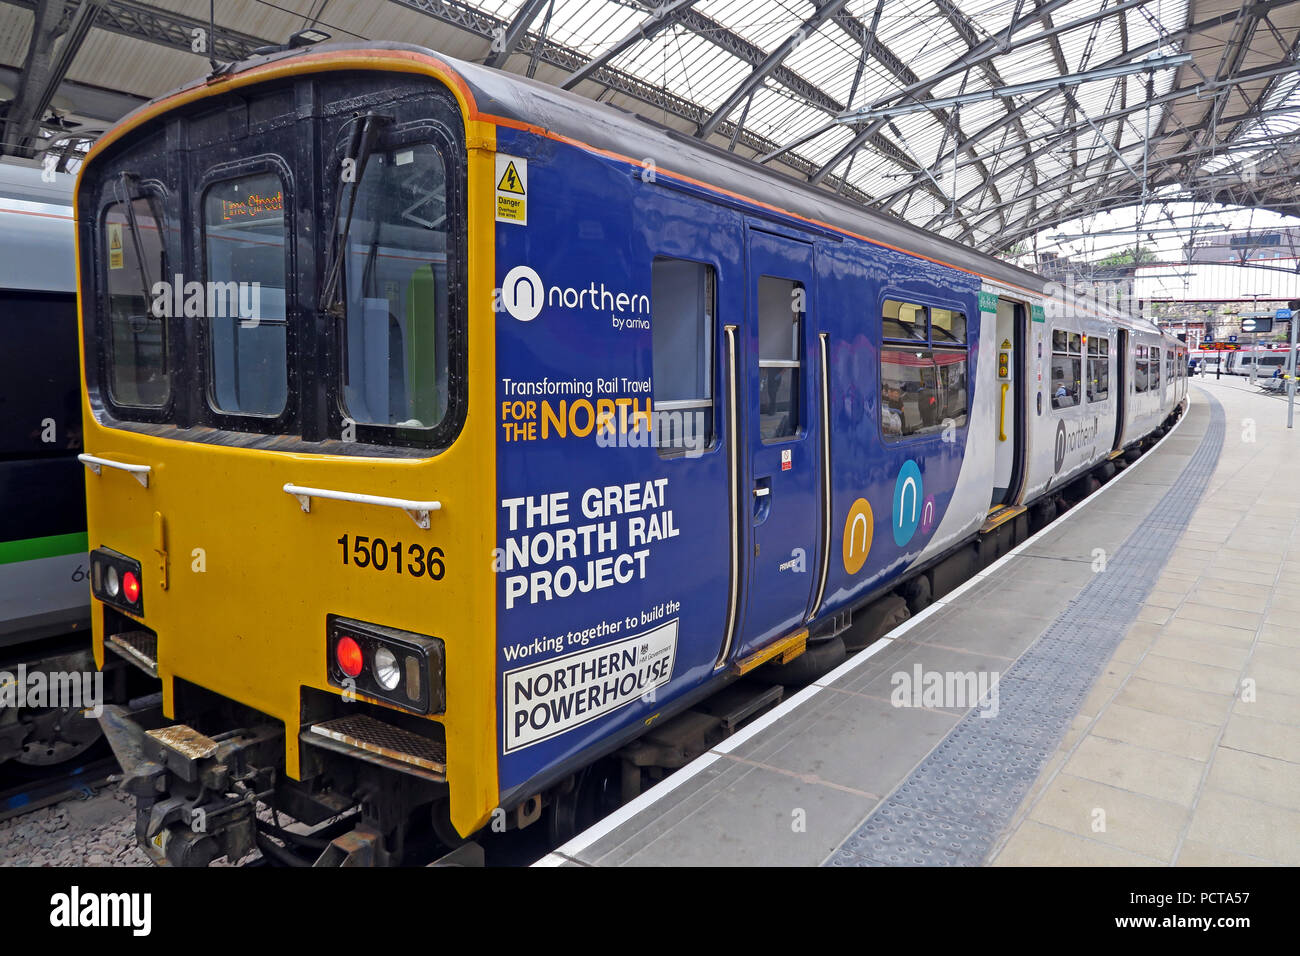 Northern Railway Train, DMU, Lime Street Railway Station, Liverpool, Merseyside, North West England, UK - Stock Image